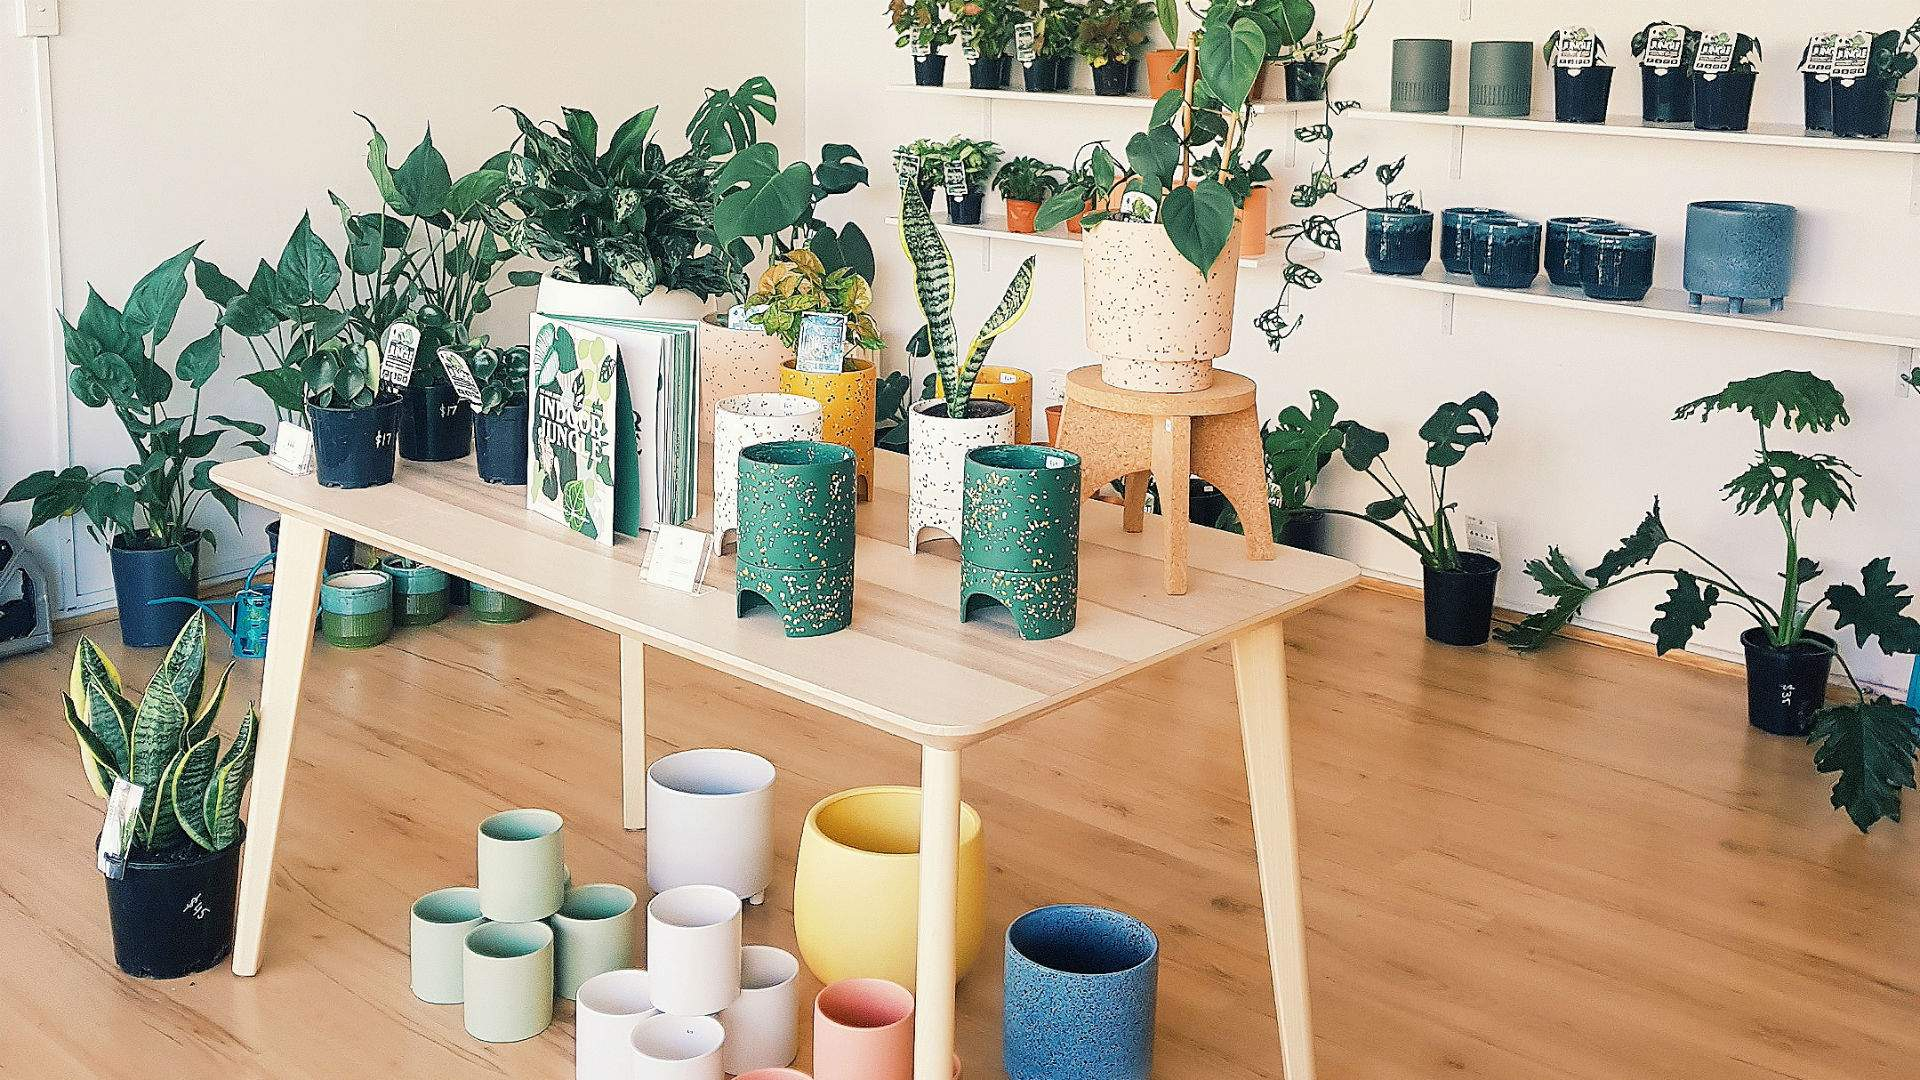 Sydney's Same-Day Plant Delivery Service Has Opened a Bricks-and-Mortar Shop in Marrickville